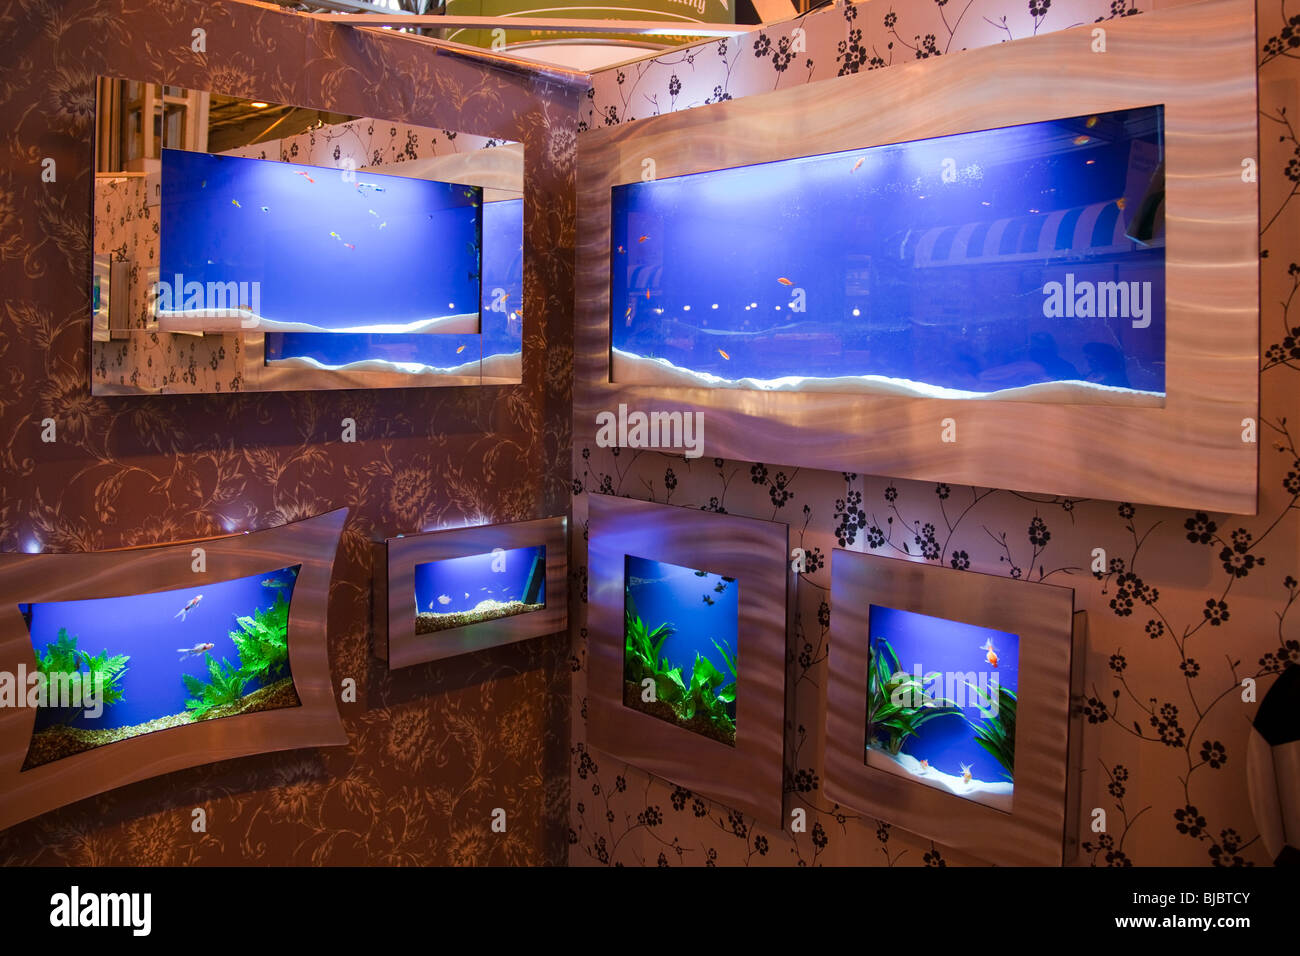 Aquarium fish tank cyprus - Fish Tanks Wall Mounted Display Fro Tropical Fishes Stock Image